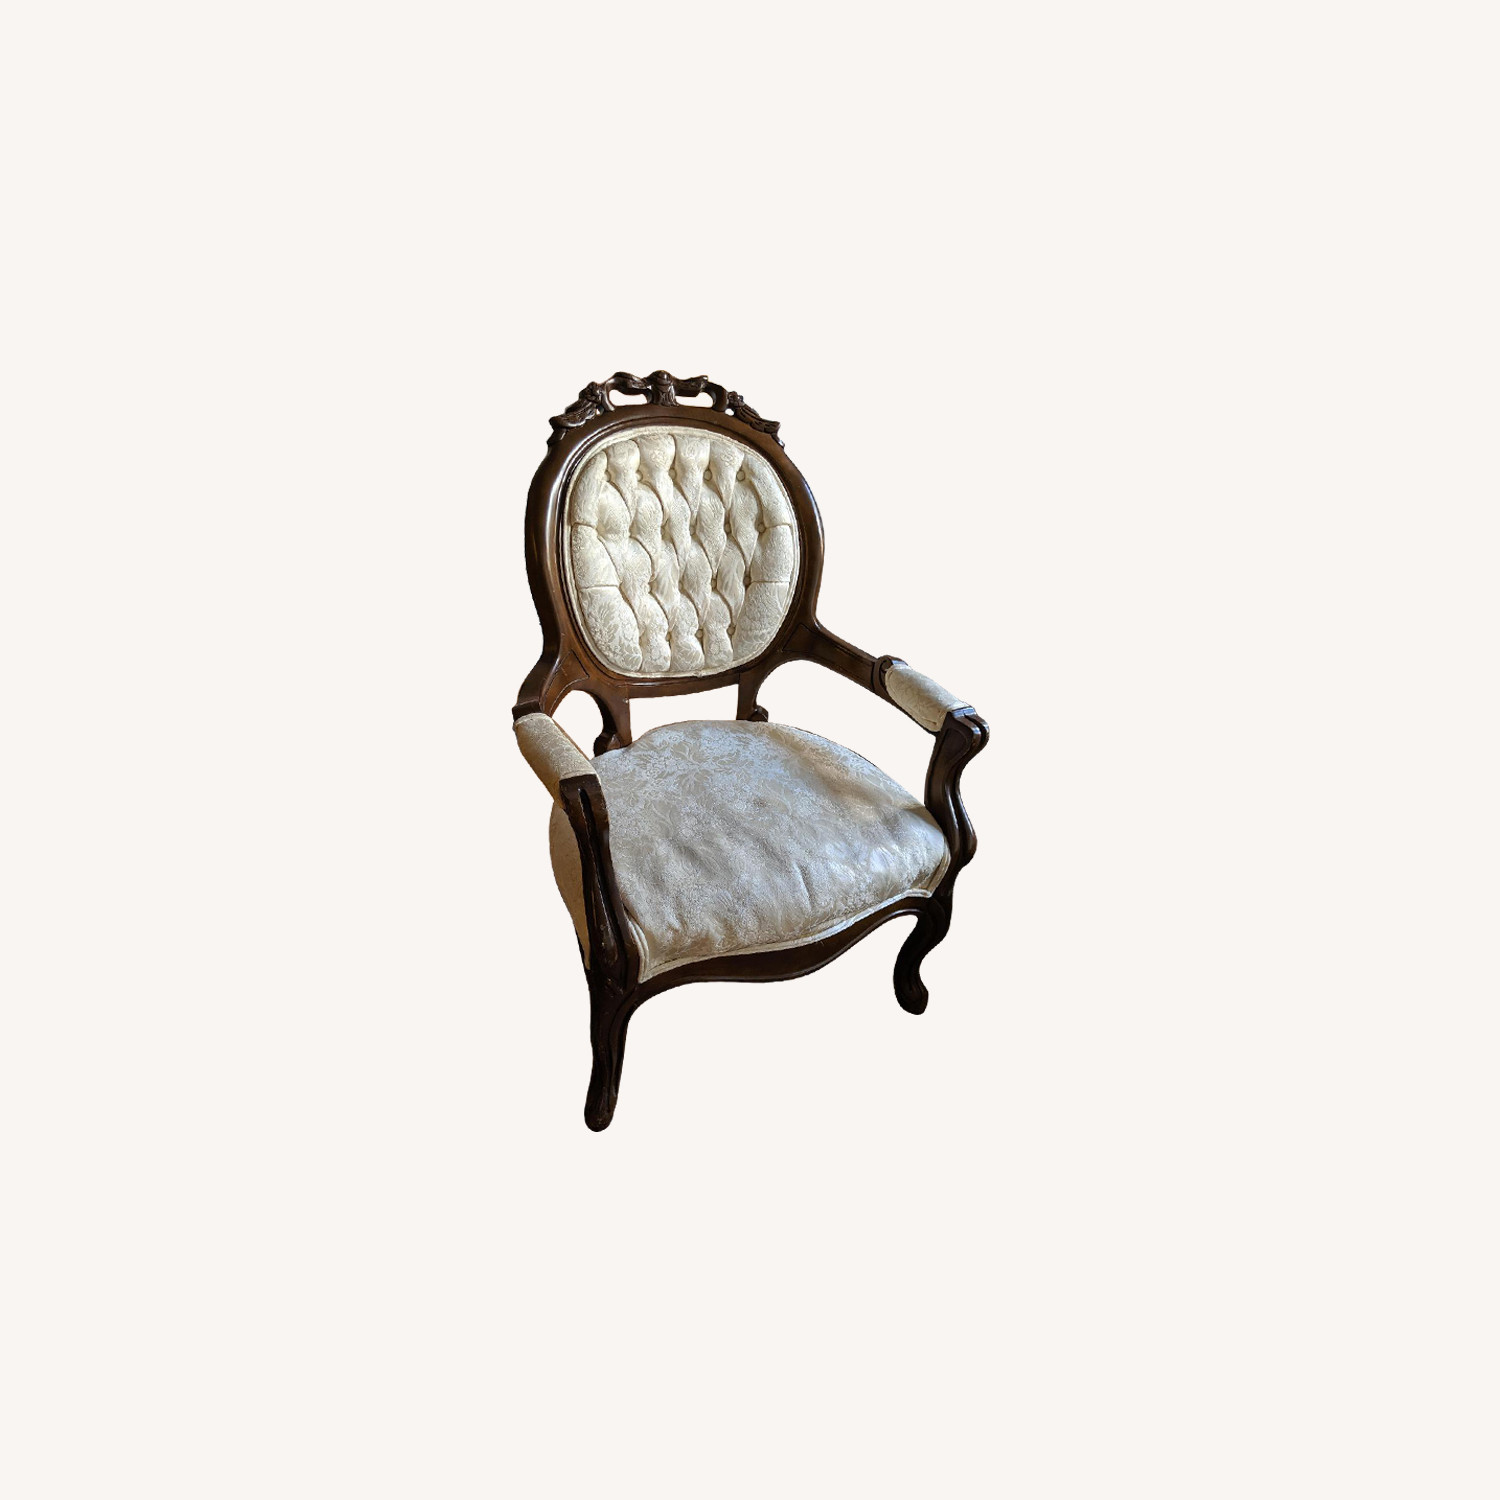 Antique Wooden & White Floral Upholsteed Chairs